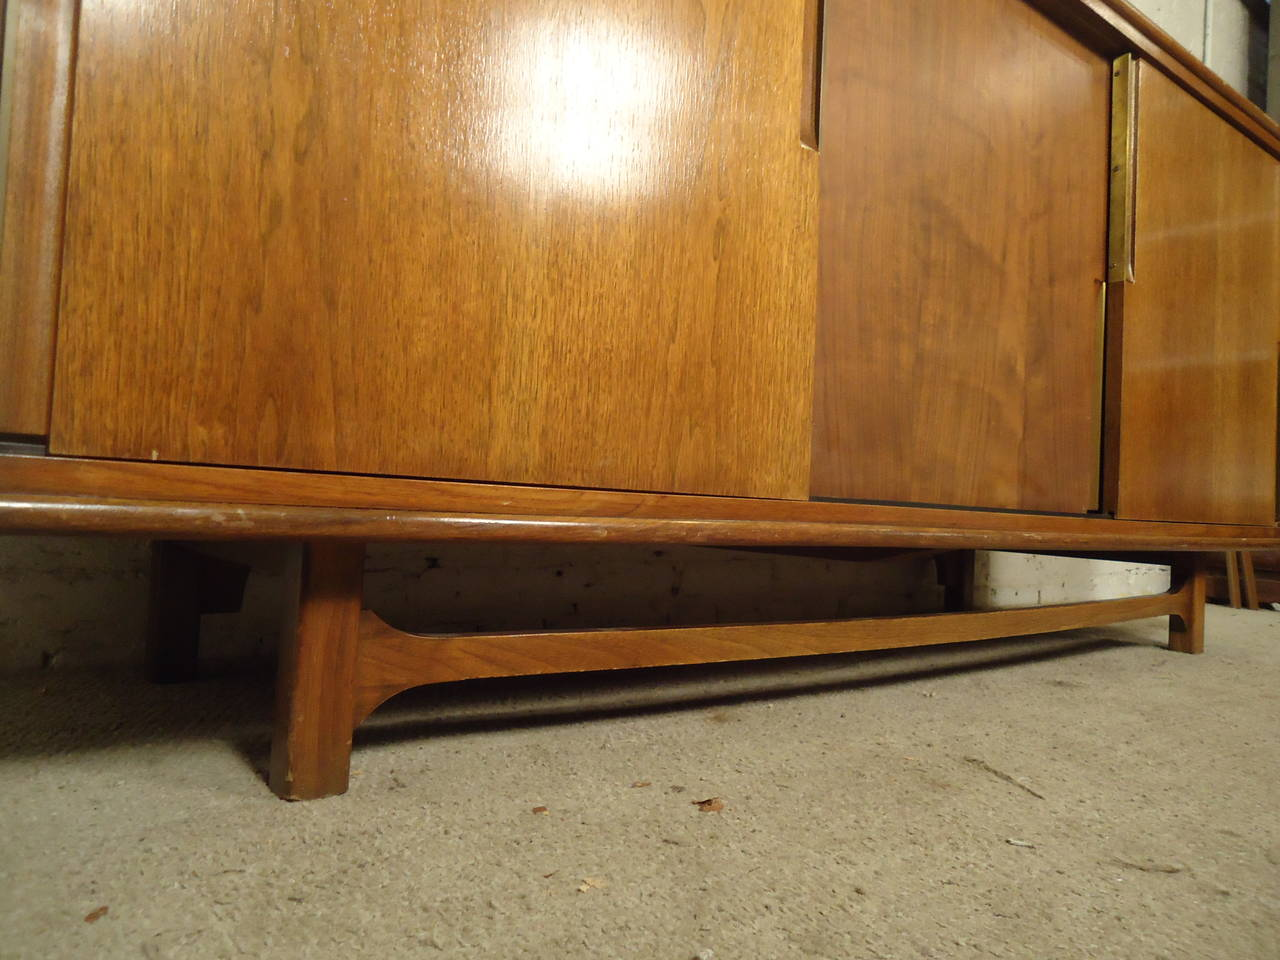 Midcentury Credenza by Cavalier with Hidden Drawers In Good Condition For Sale In Brooklyn, NY